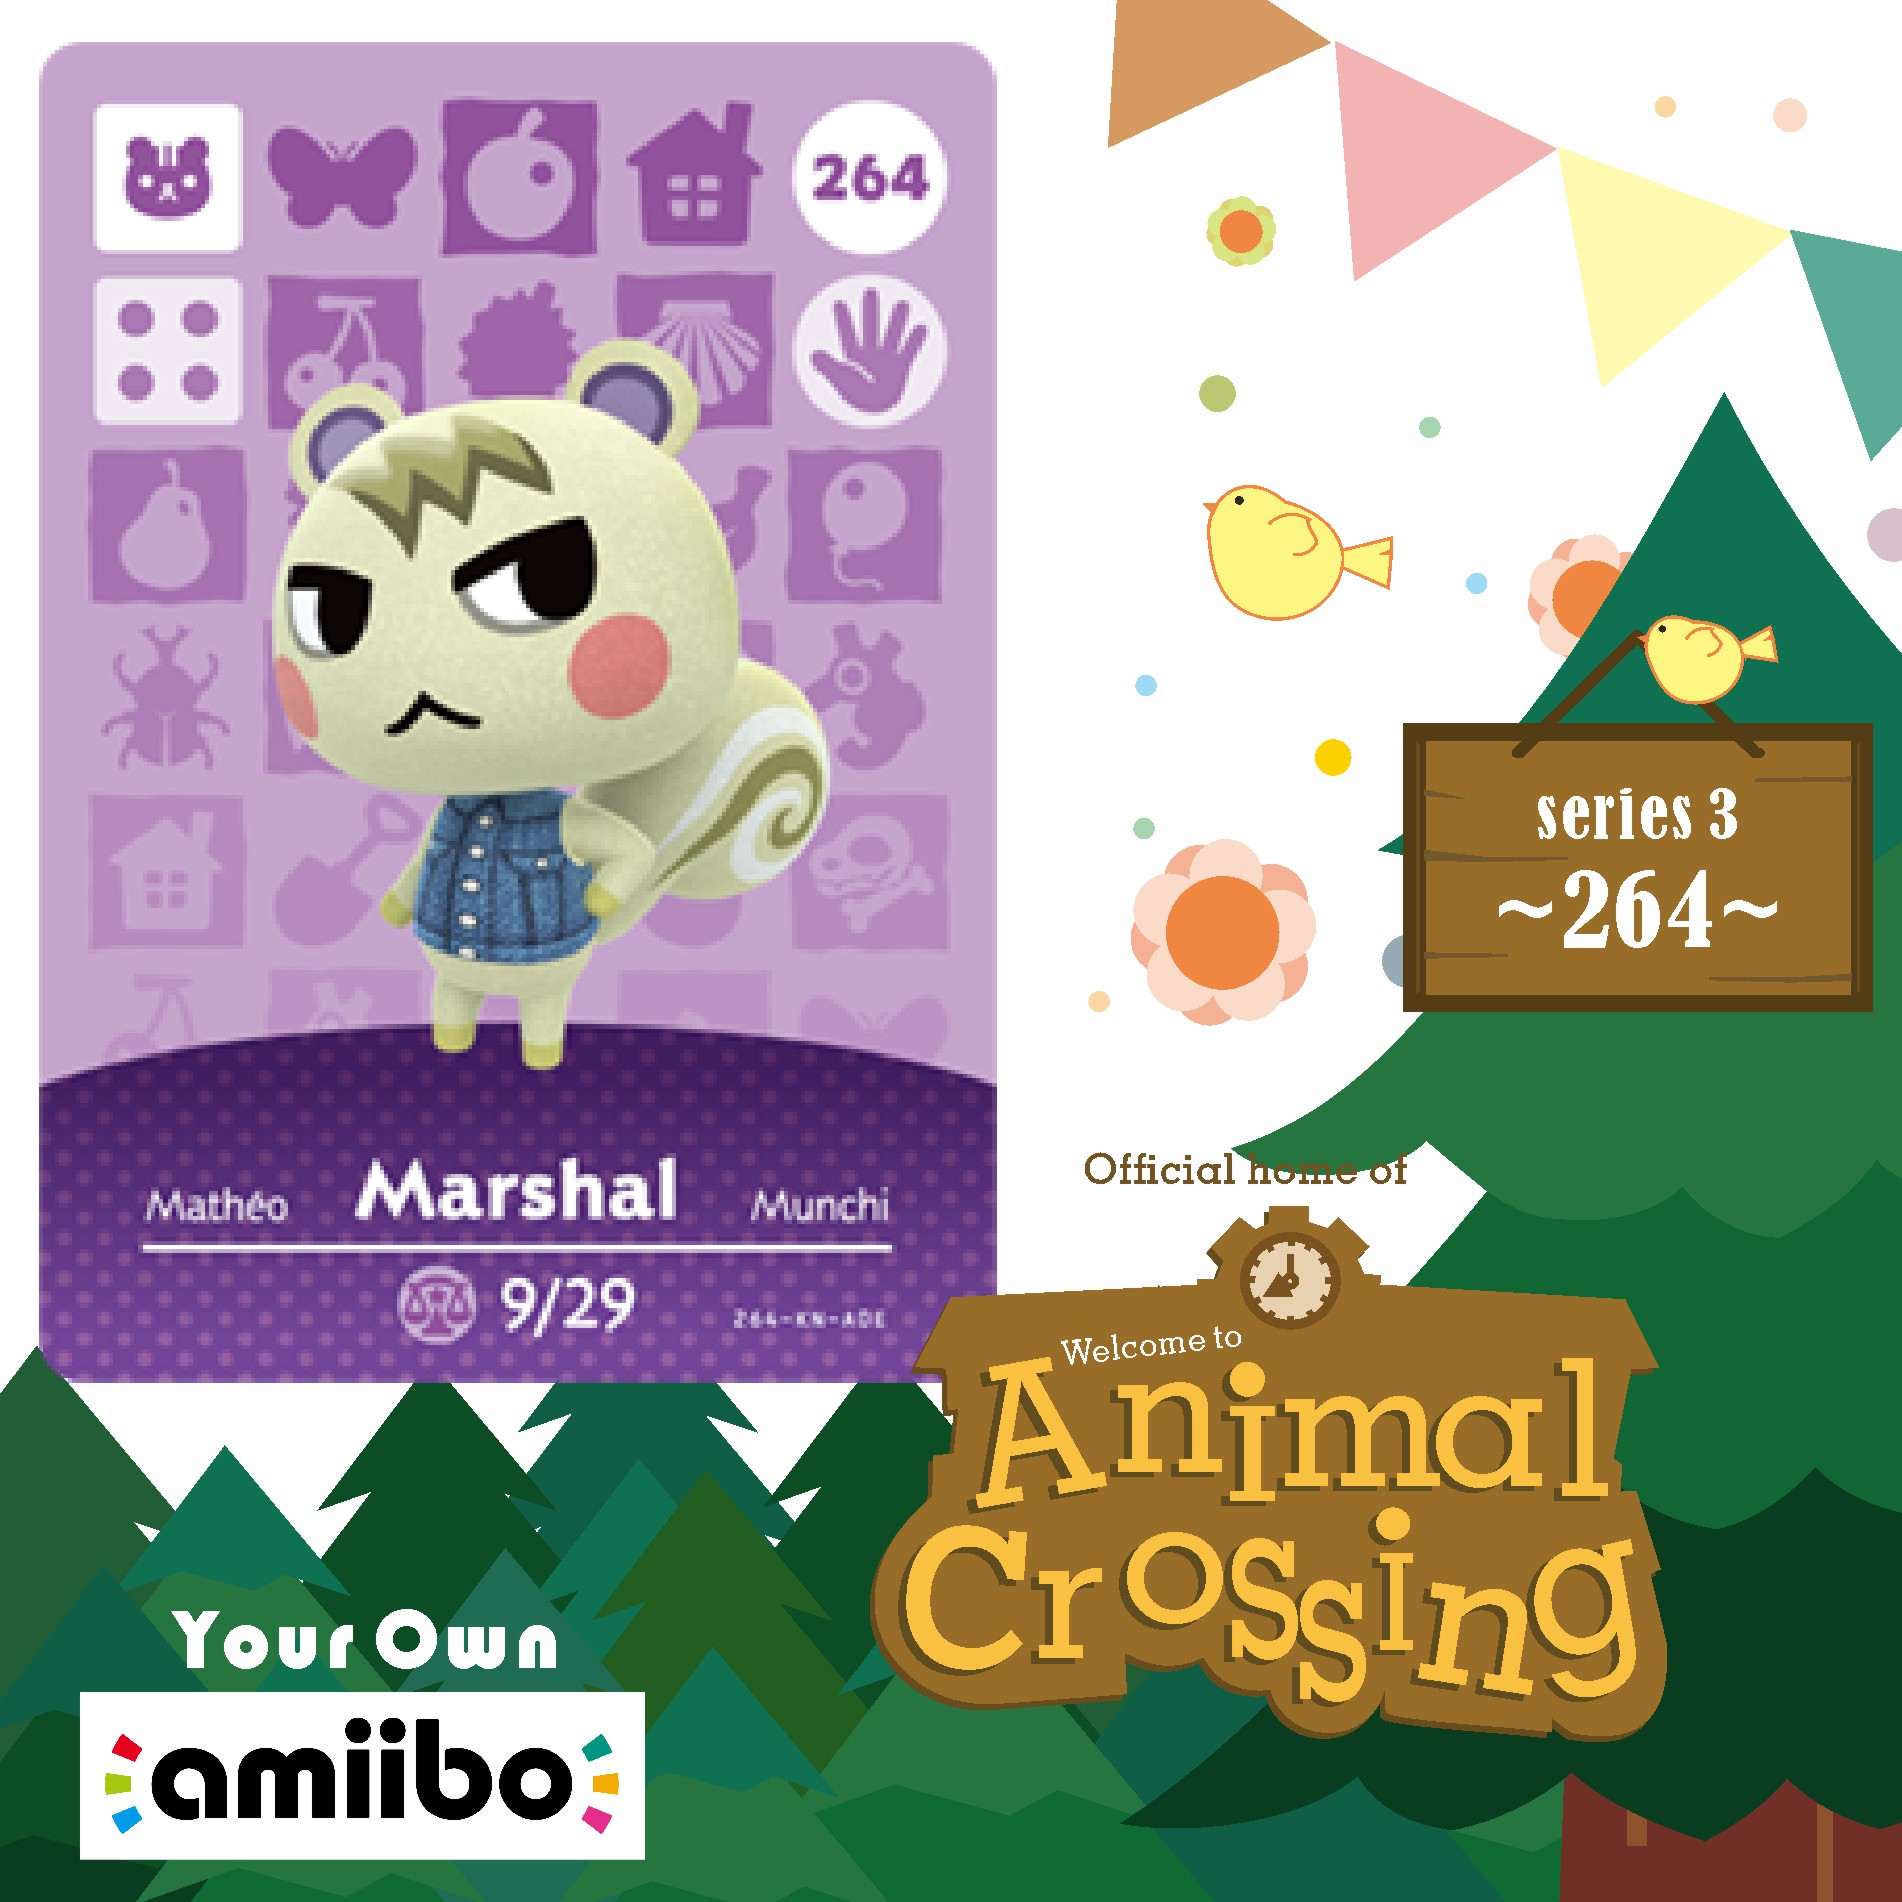 Welcome Amiibo Card Card Marshal Animal Crossing Marshal Animal Crossing Marshal Animal Crossing Marshal Animal Crossing Marshal